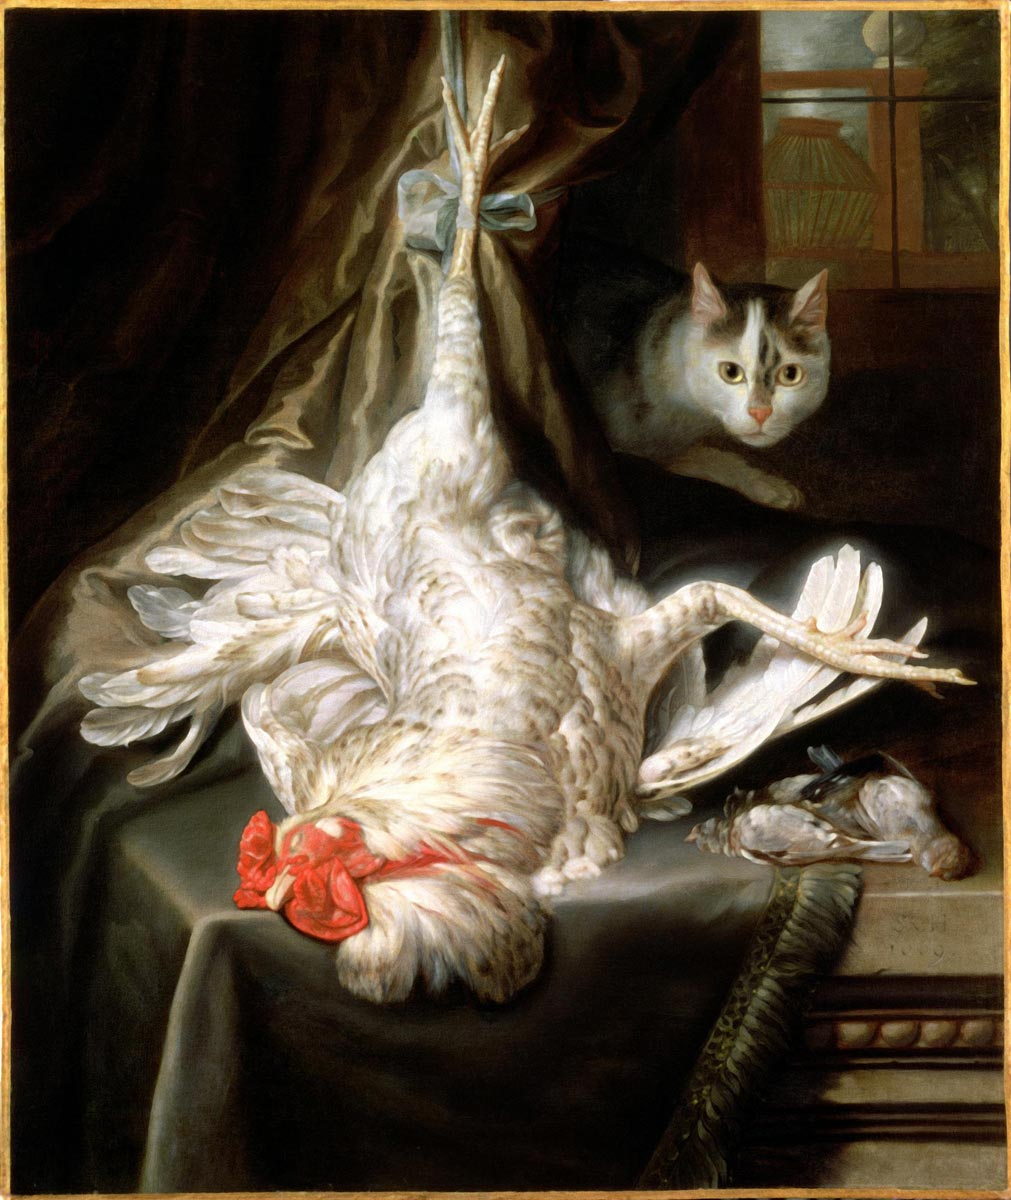 Samuel van Hoogstraten, Still life with a hanging cockerel and a prowling cat, 1669.